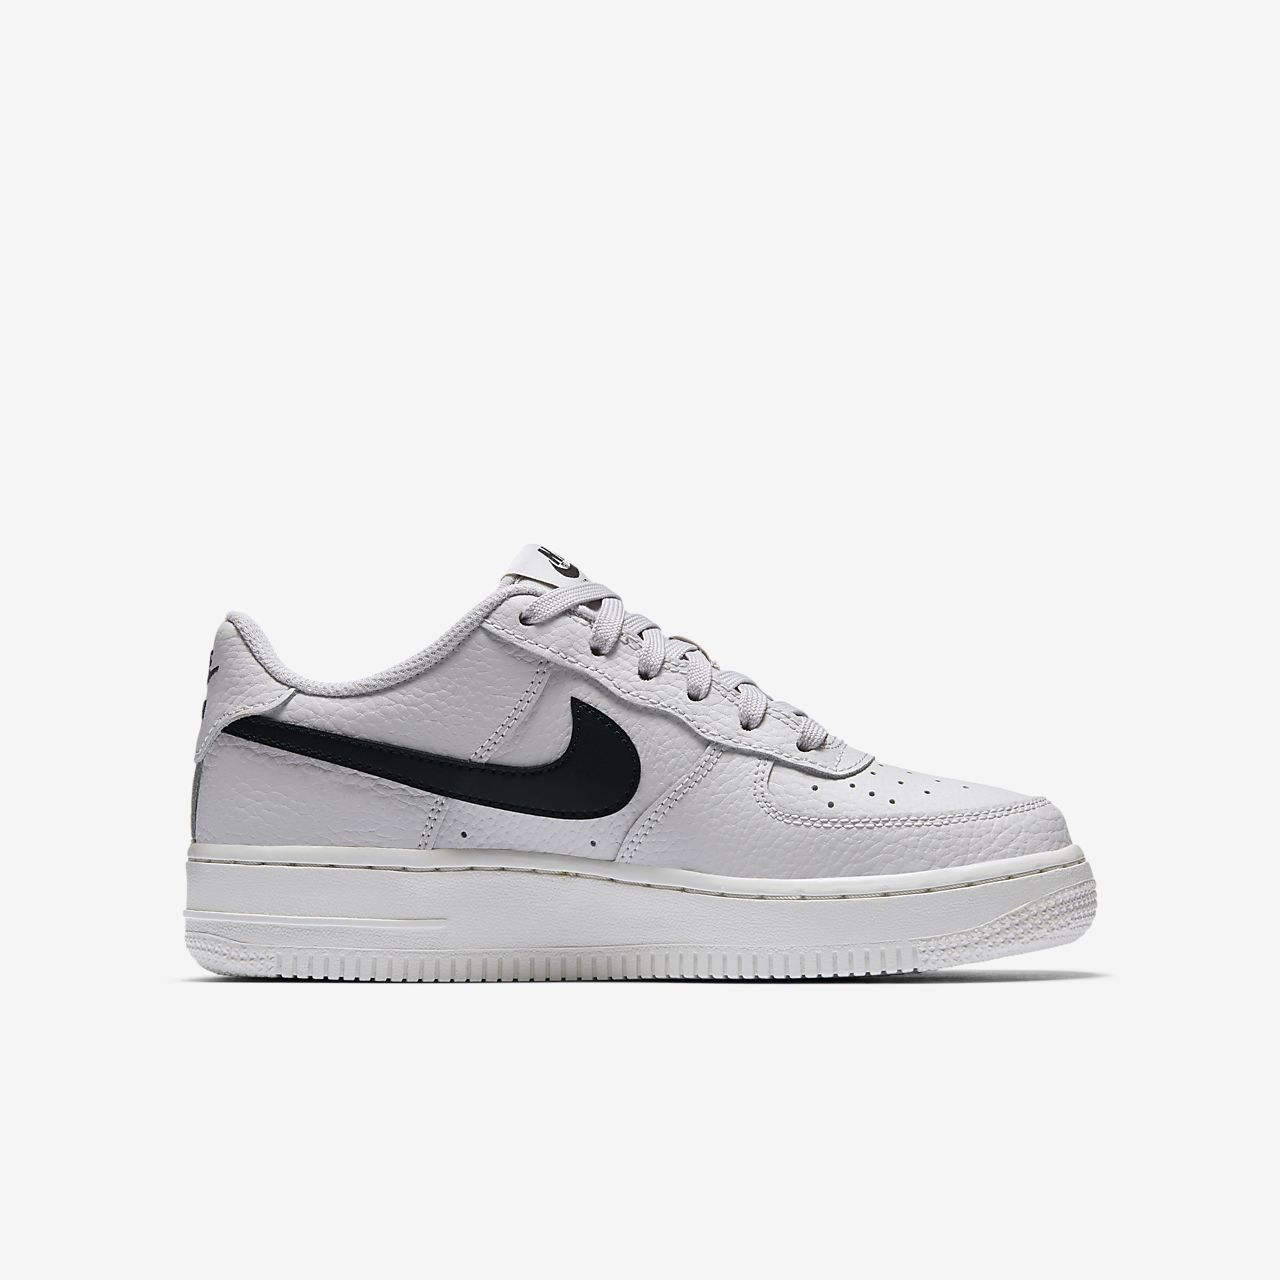 air force 1 35y 7y big kids shoe nnTrwZV1 nike air force 1 (3 5y